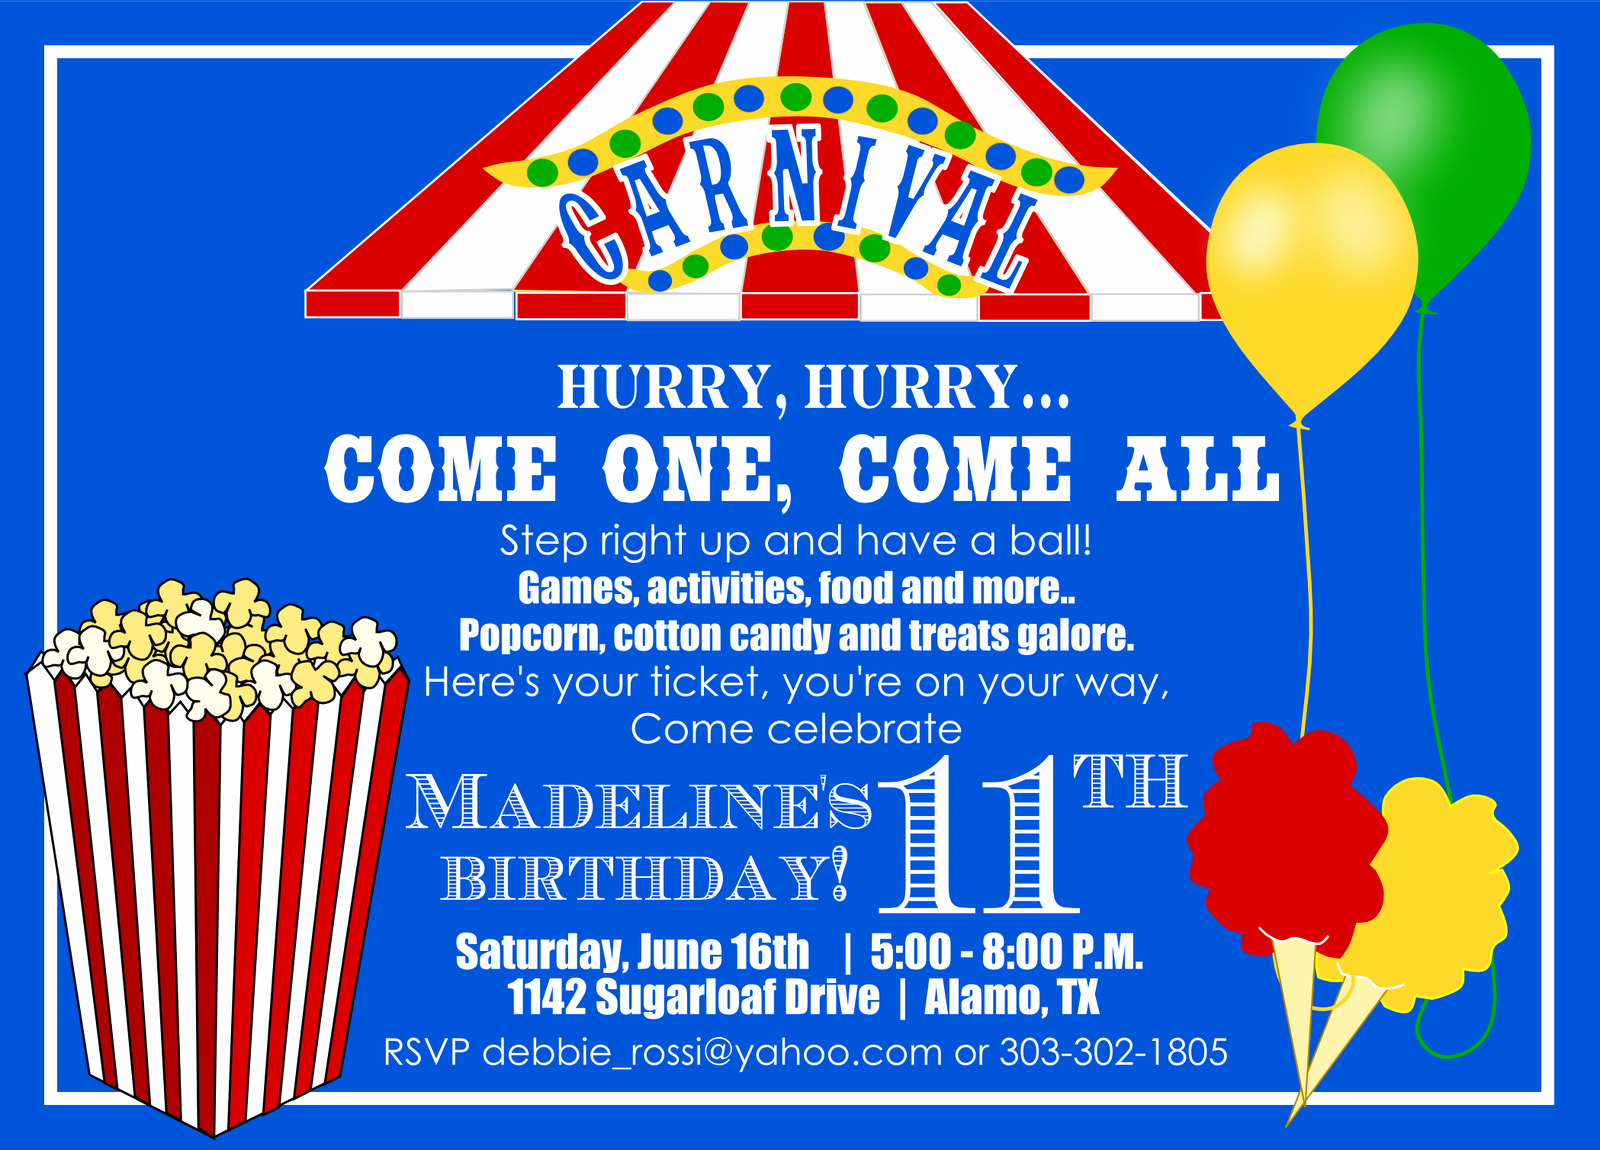 Carnival Ticket Invitation Template Free Best Of 40th Birthday Ideas Carnival Birthday Invitation Template